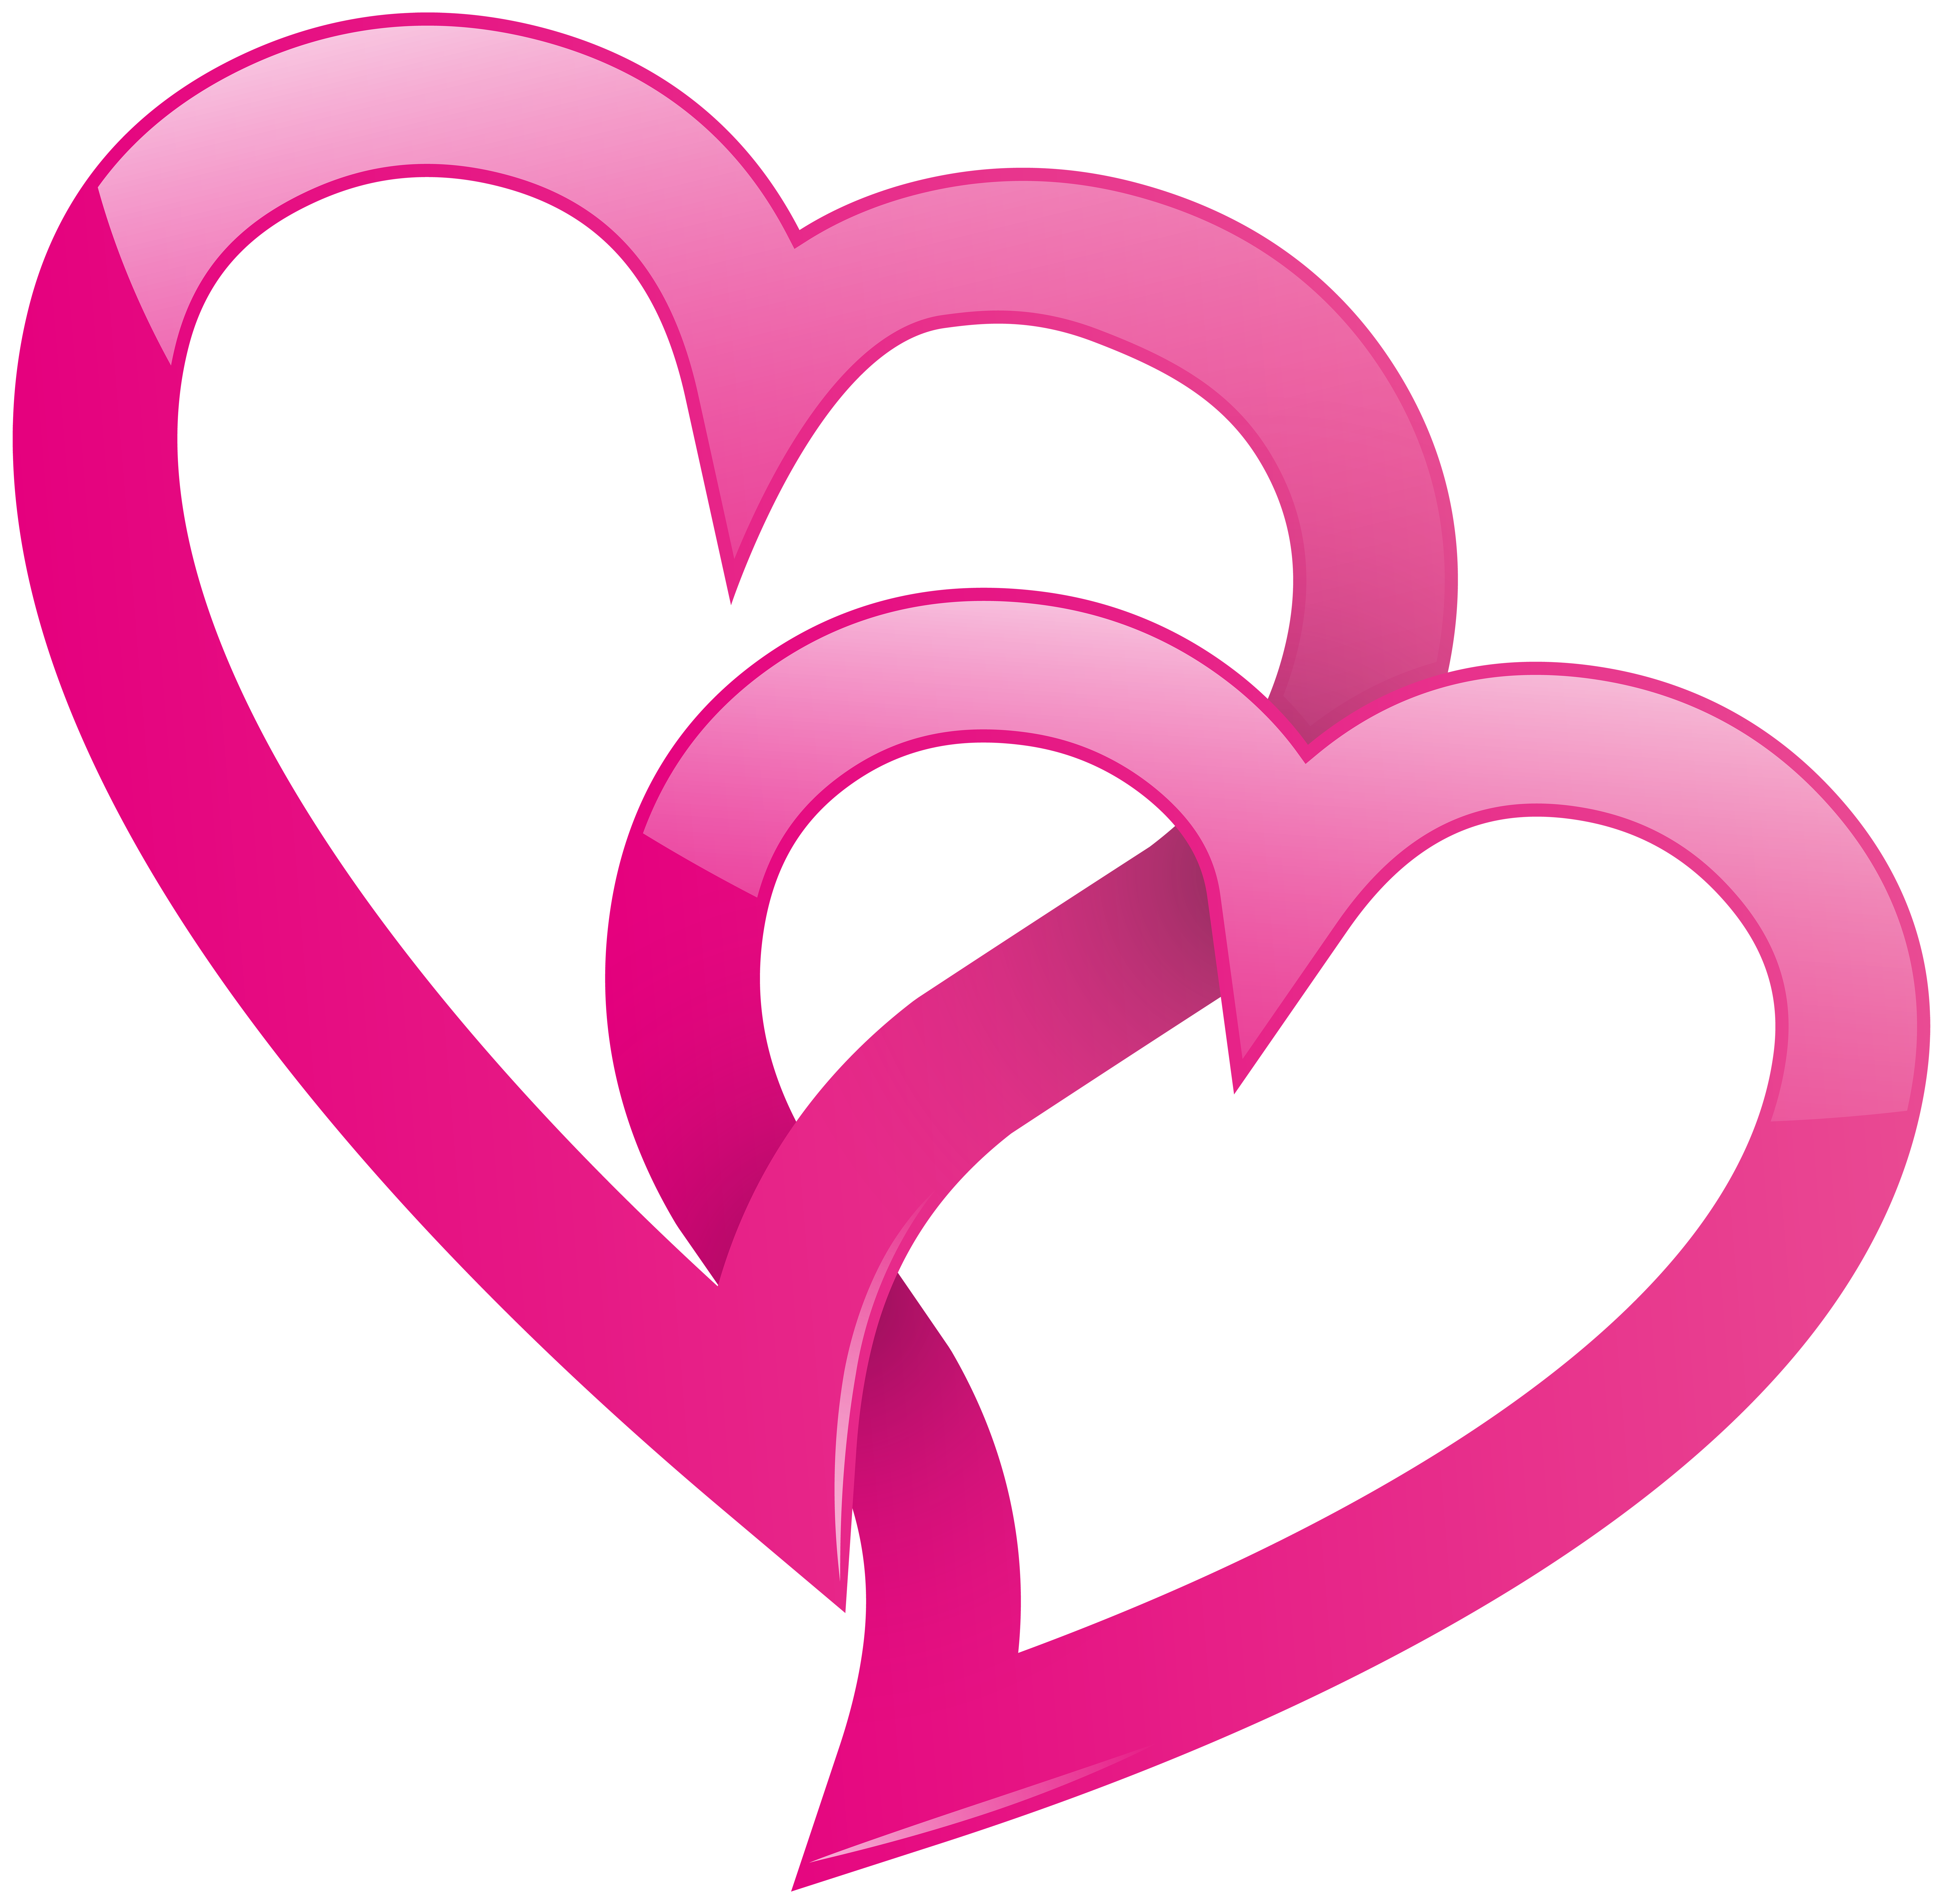 Pink Double Heart PNG Clip Art Image.